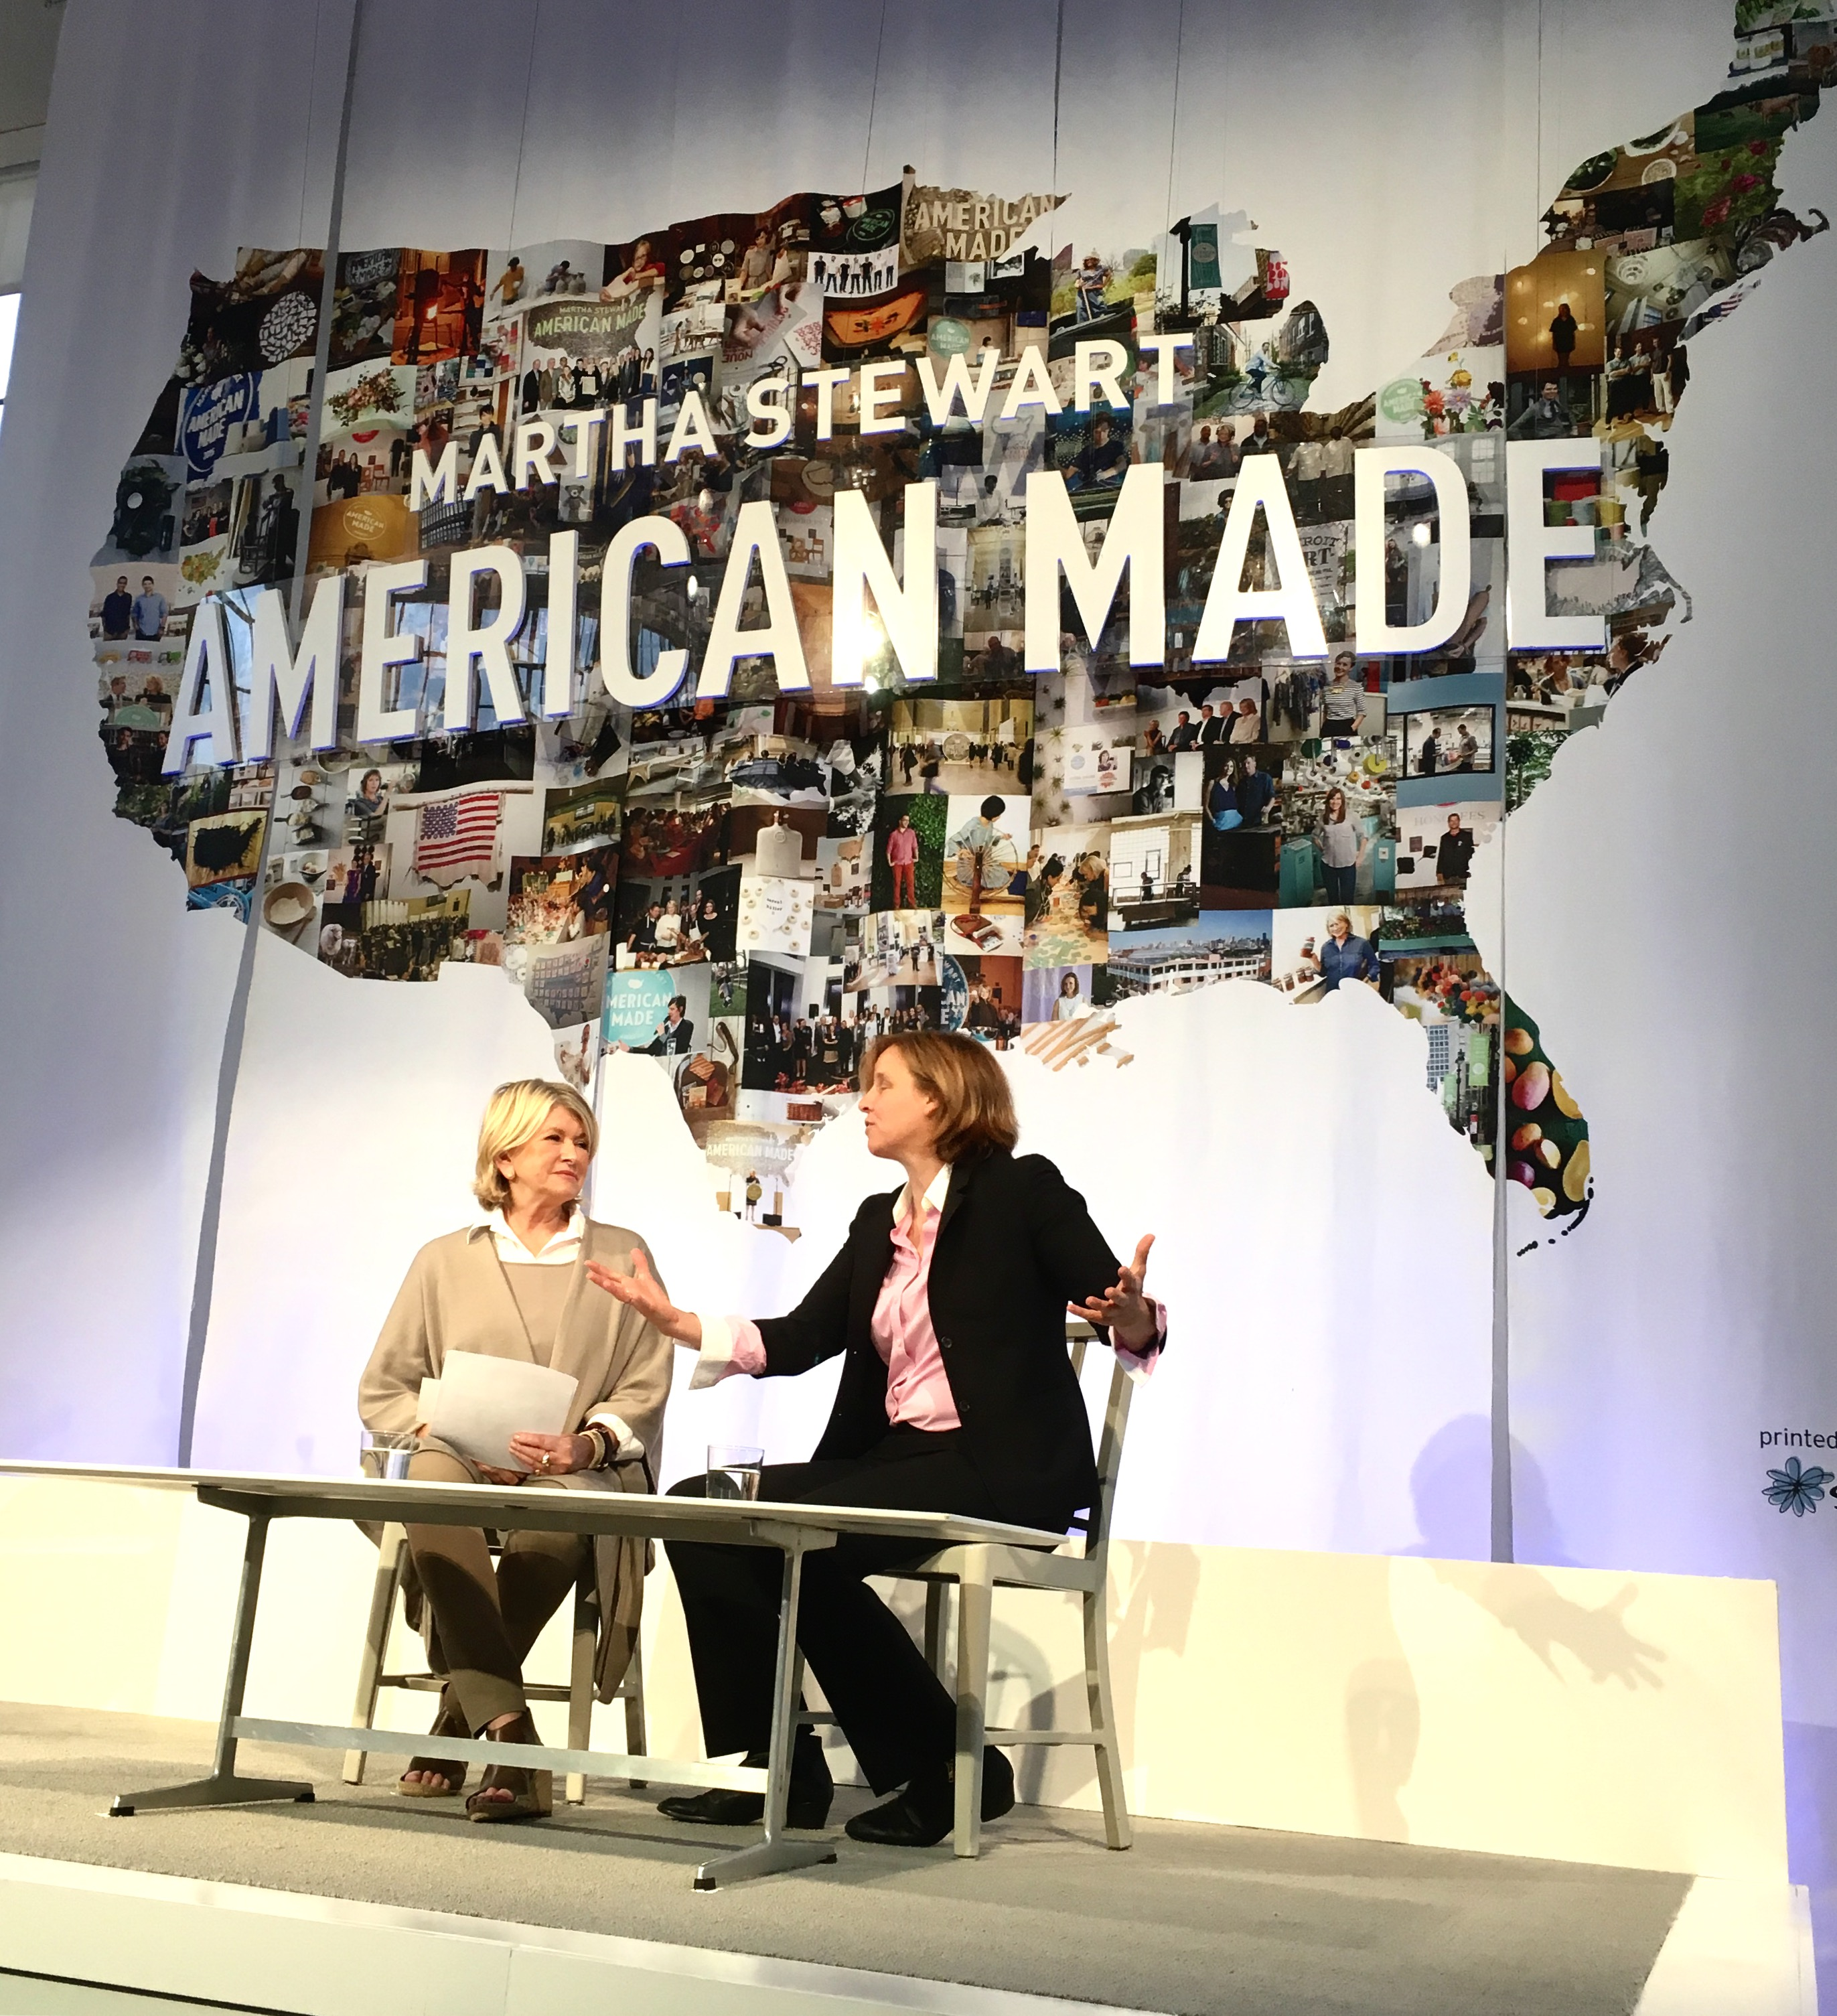 America's CTO Megan Smith delivered the closing keynote at the Martha Steward American Made summit.